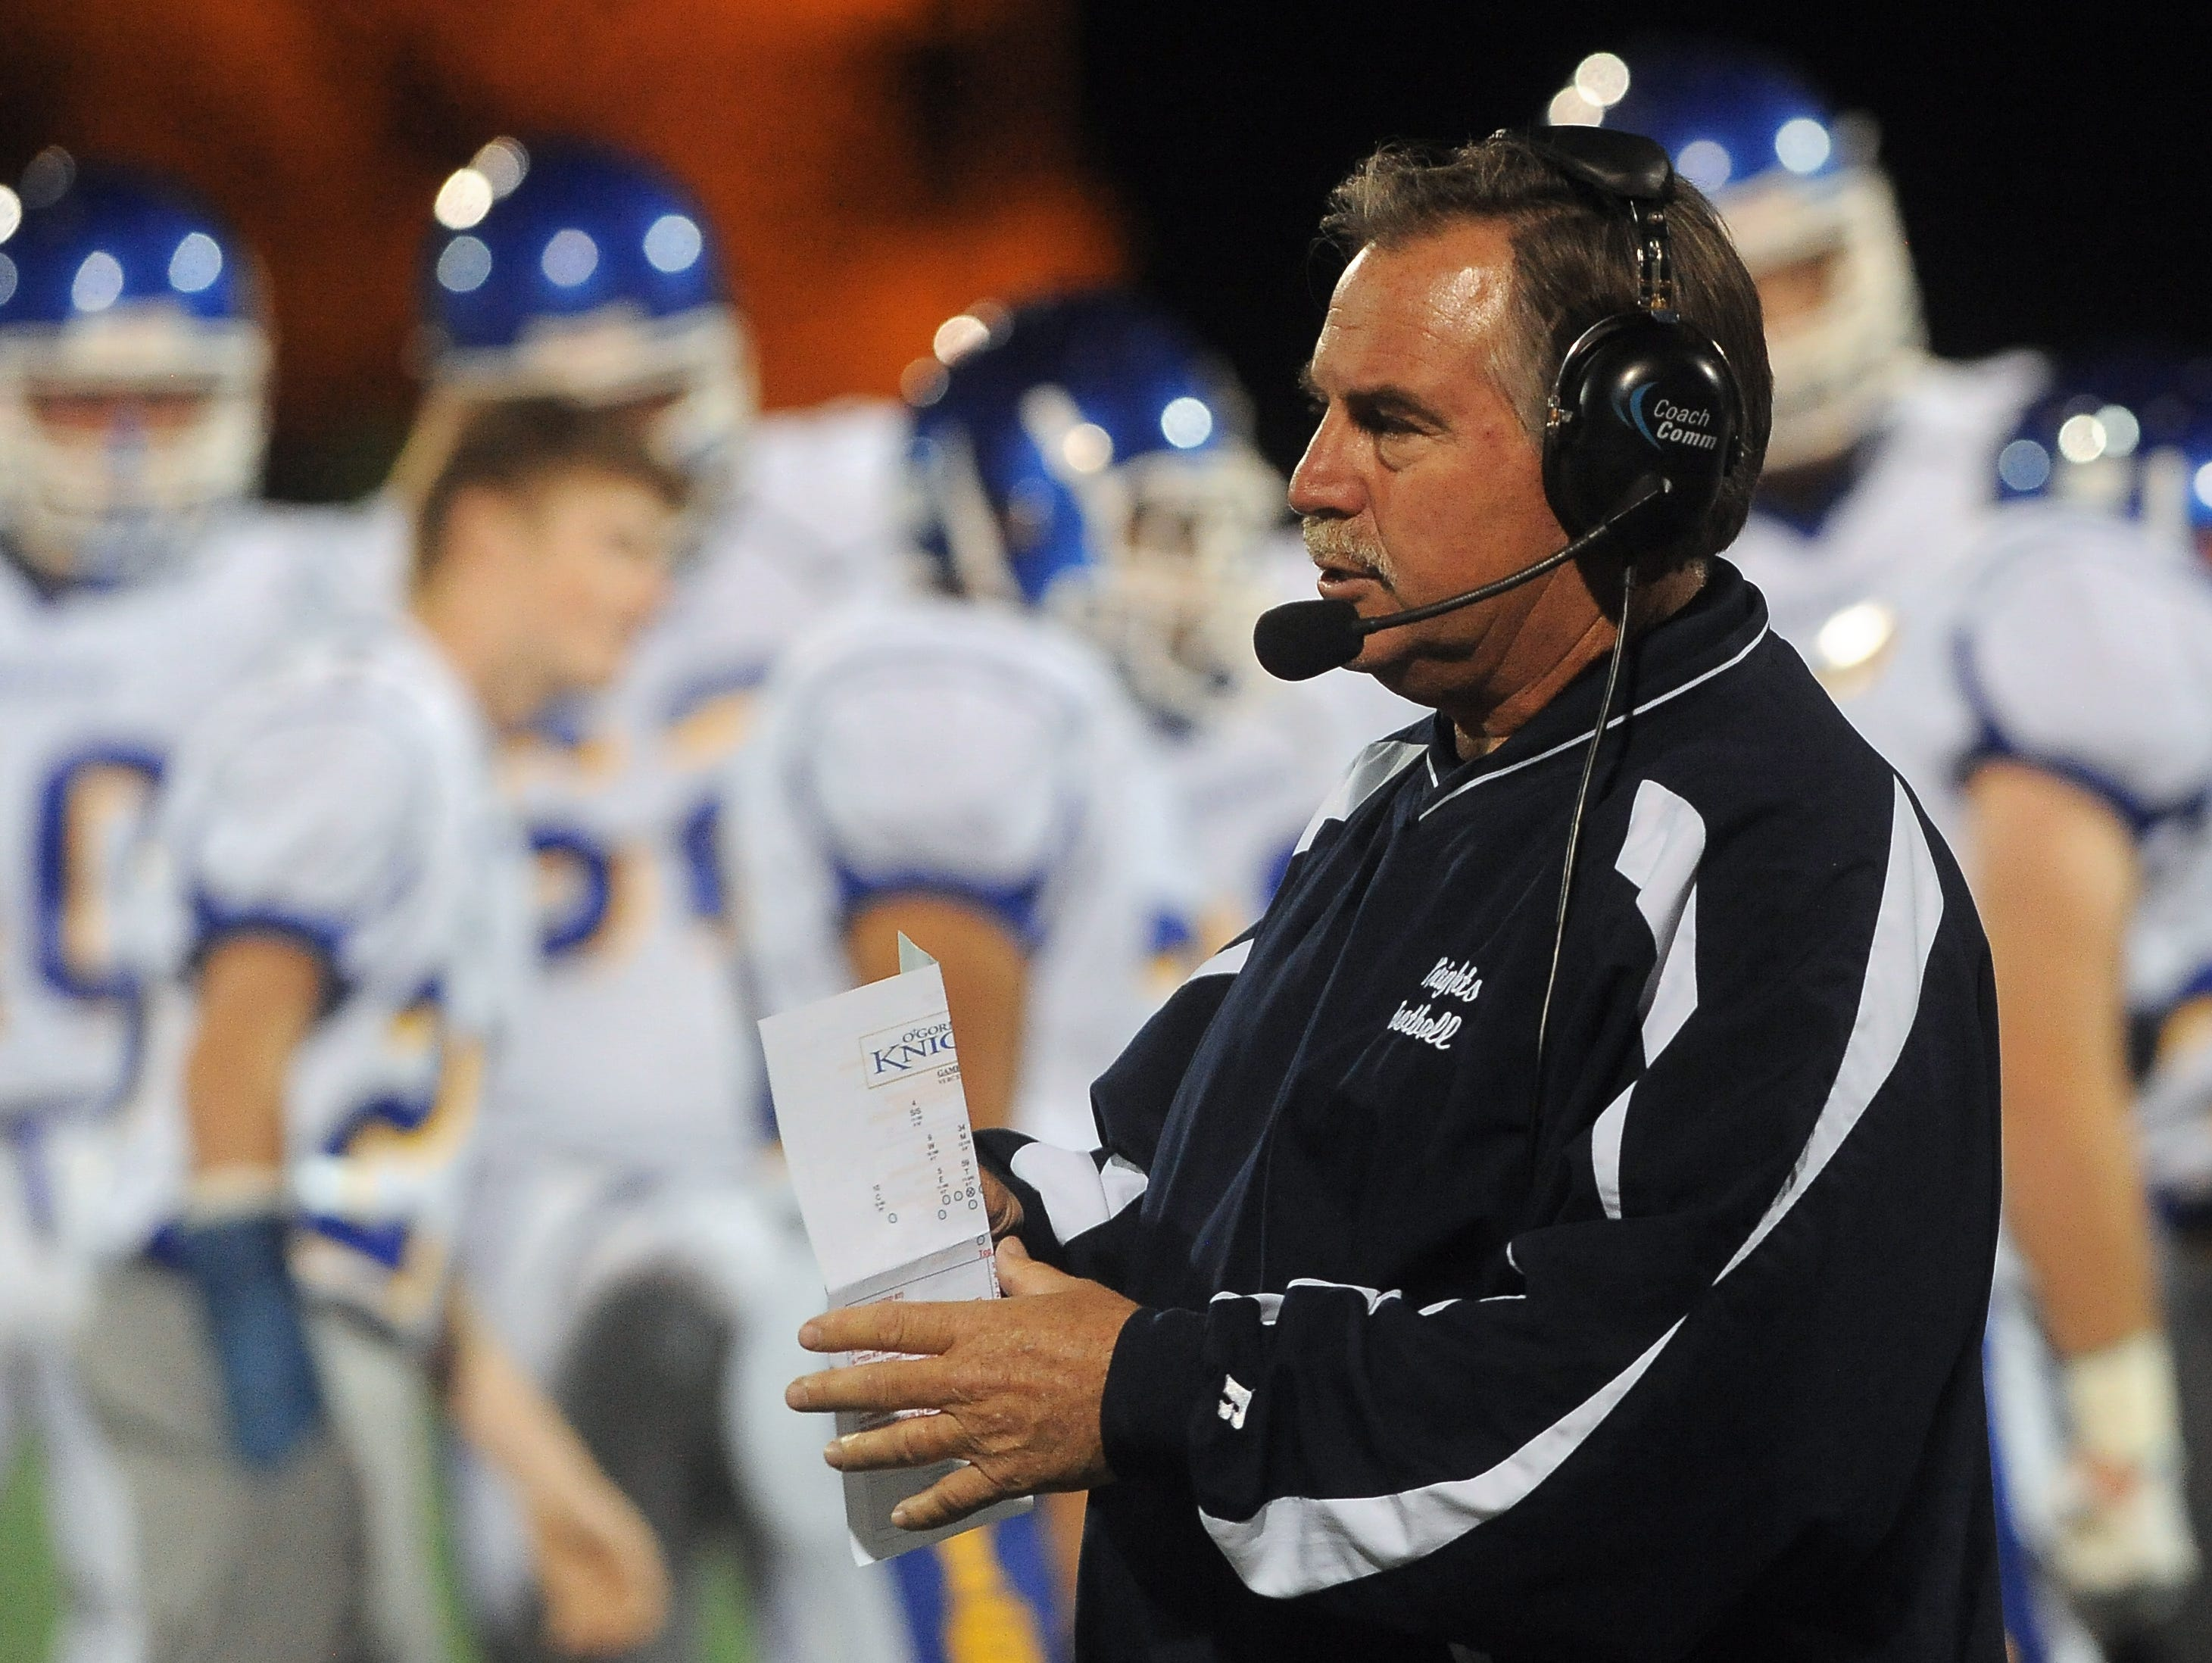 O'Gorman football coach Steve Kueter will be honored with a retirement roast on April 15.